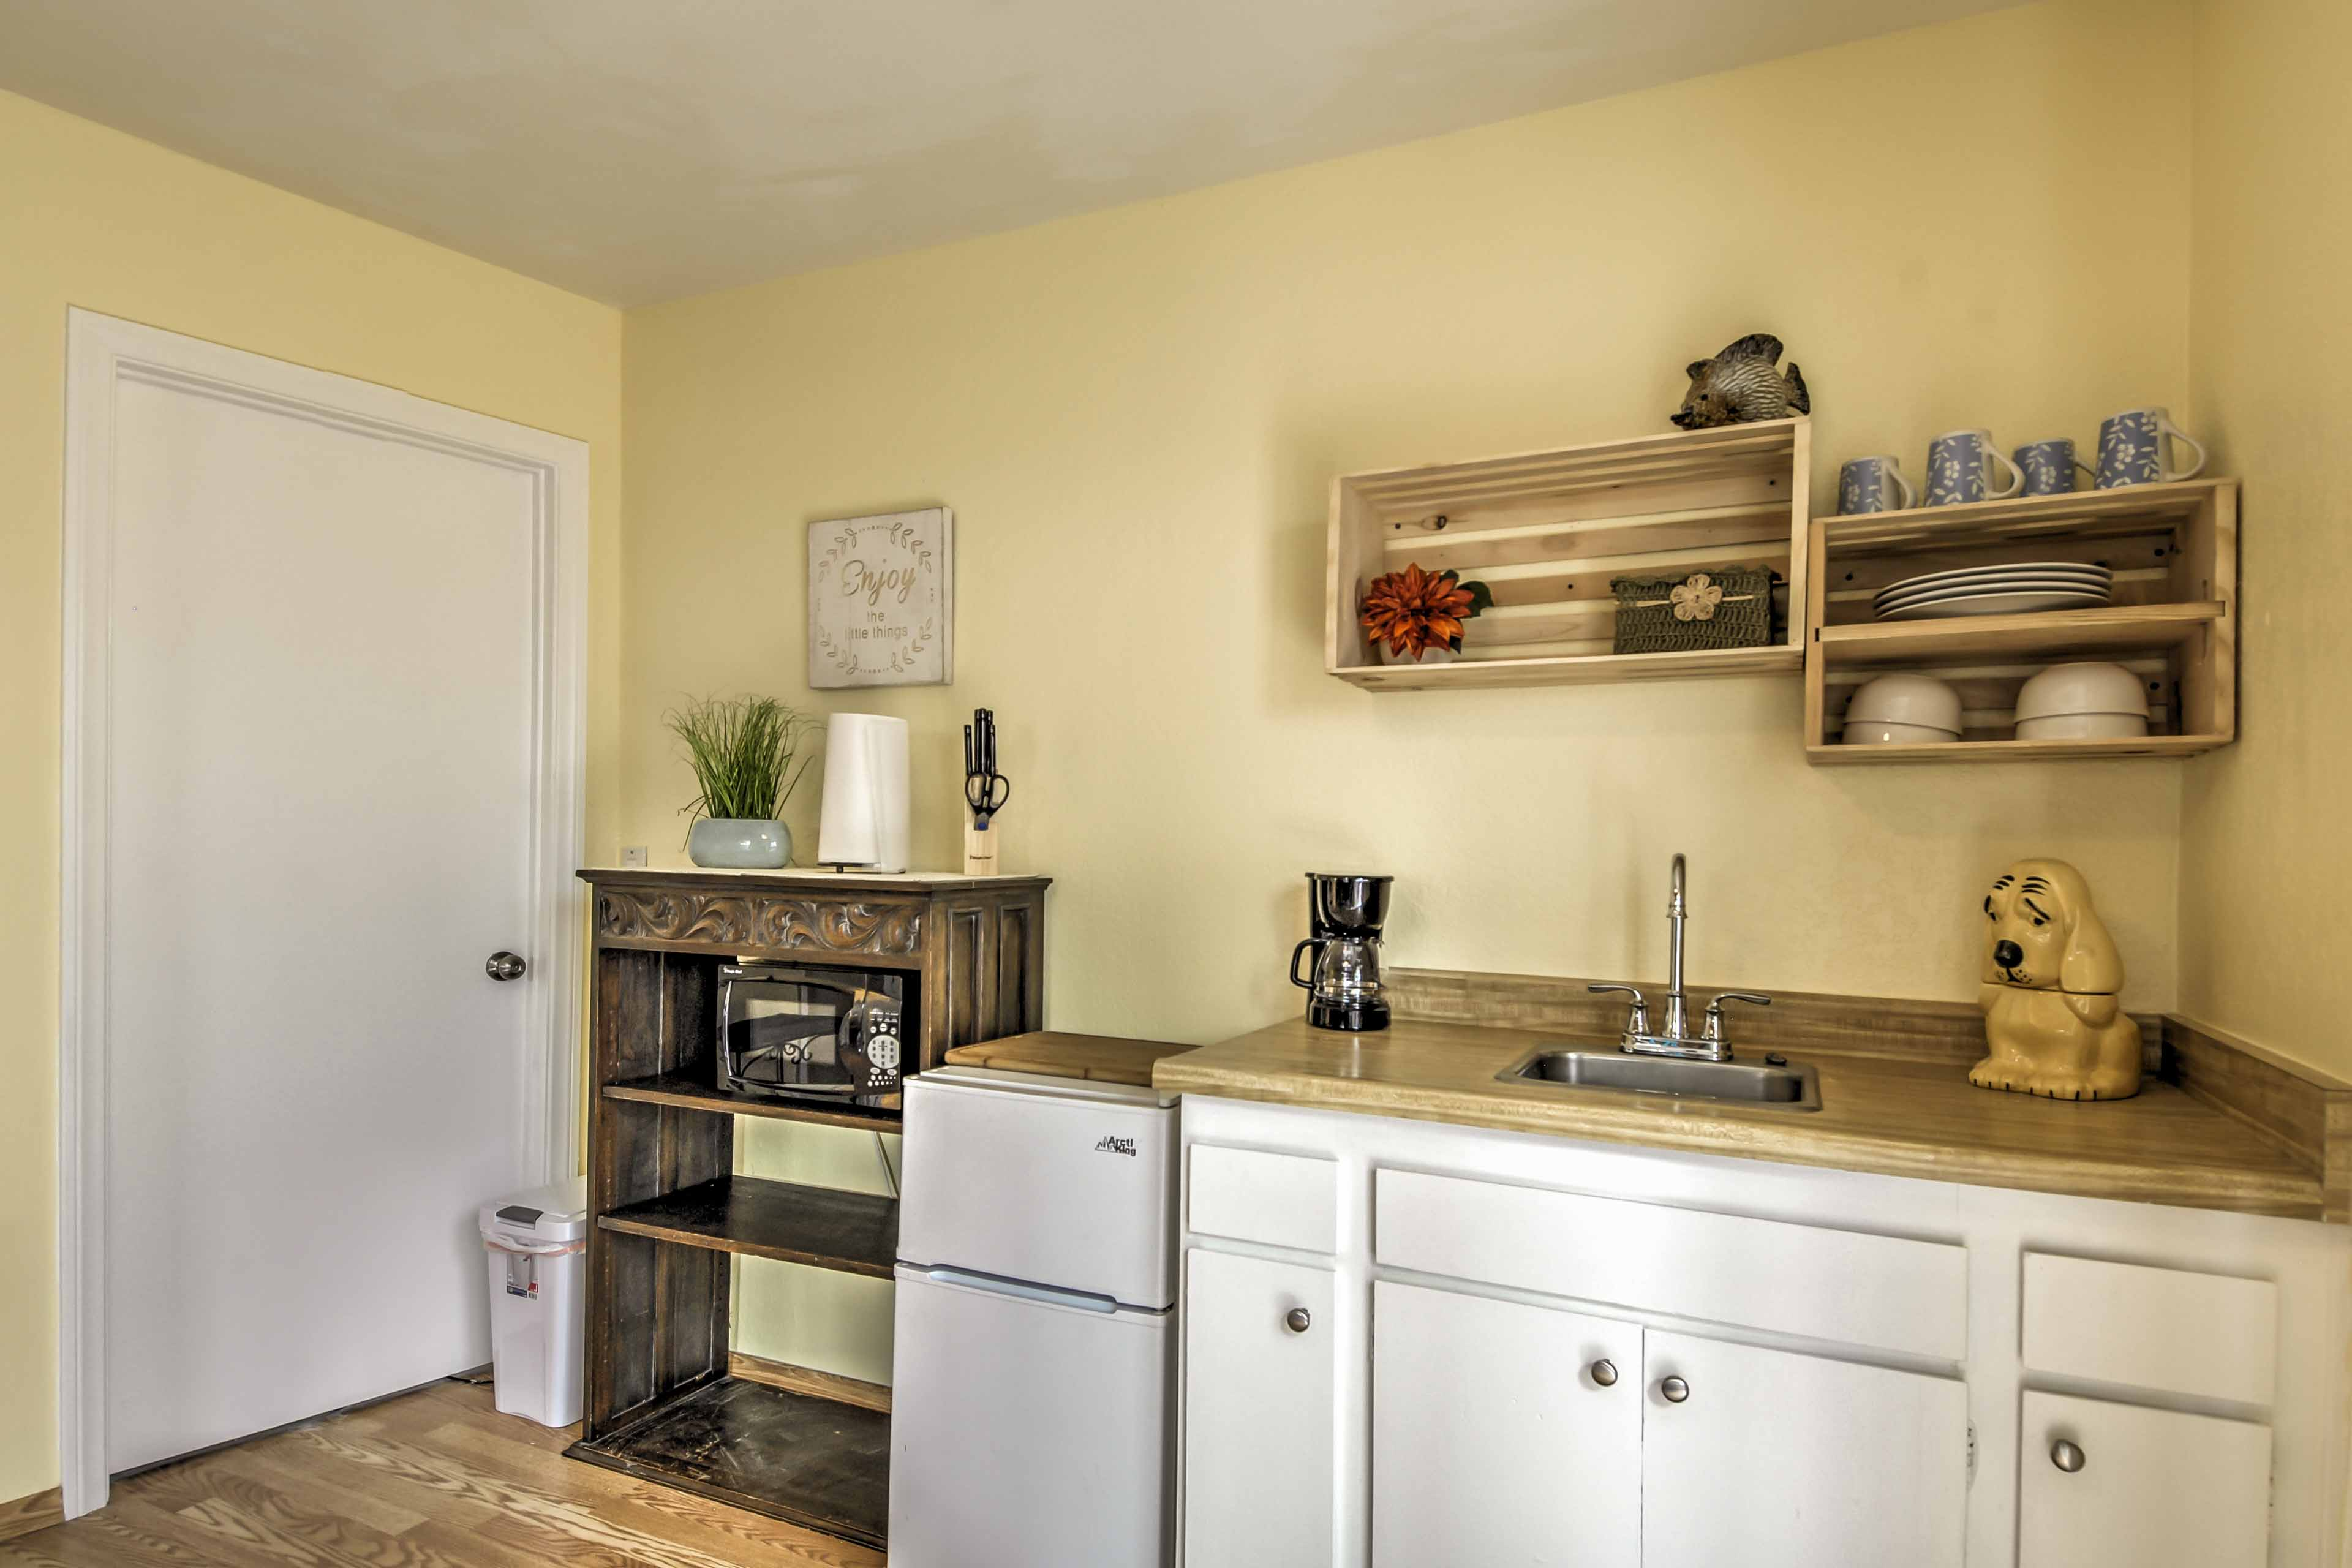 The kitchenette is equipped with a mini fridge and freezer, microwave, coffee maker and more!